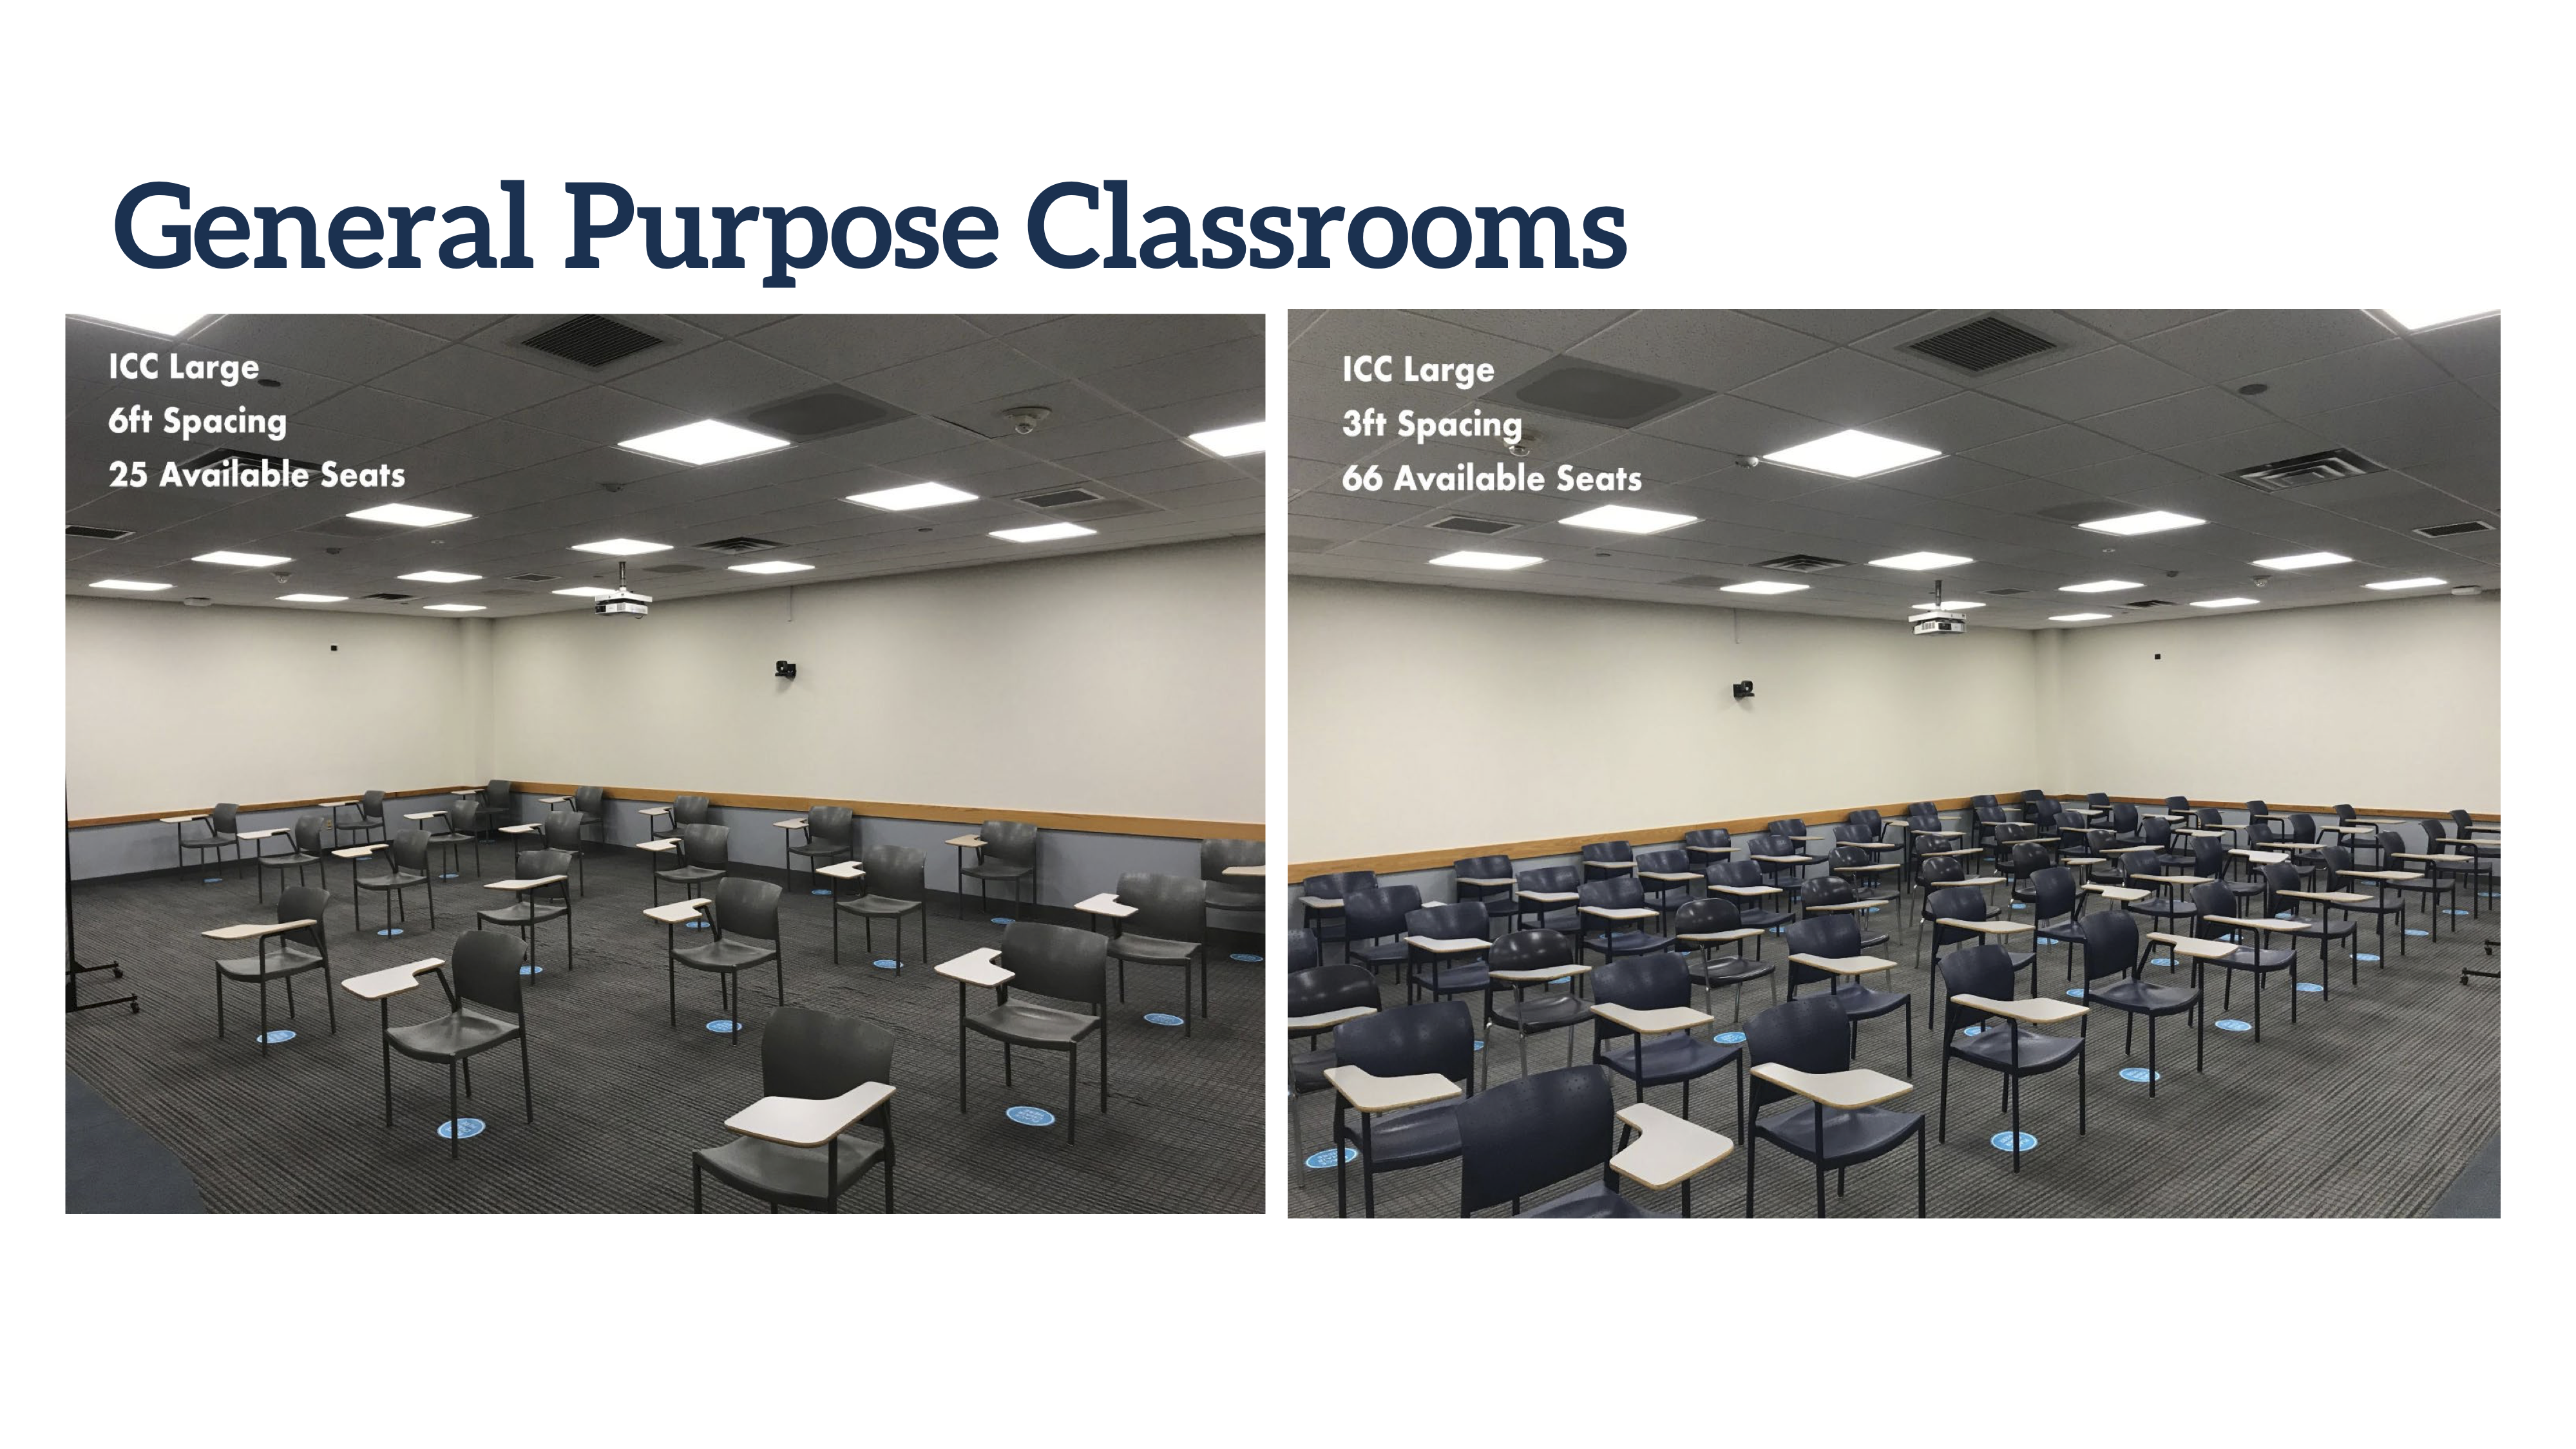 Pictures of Medium Classroom with Two Social Distancing Spacing, 6 ft vs 3 ft